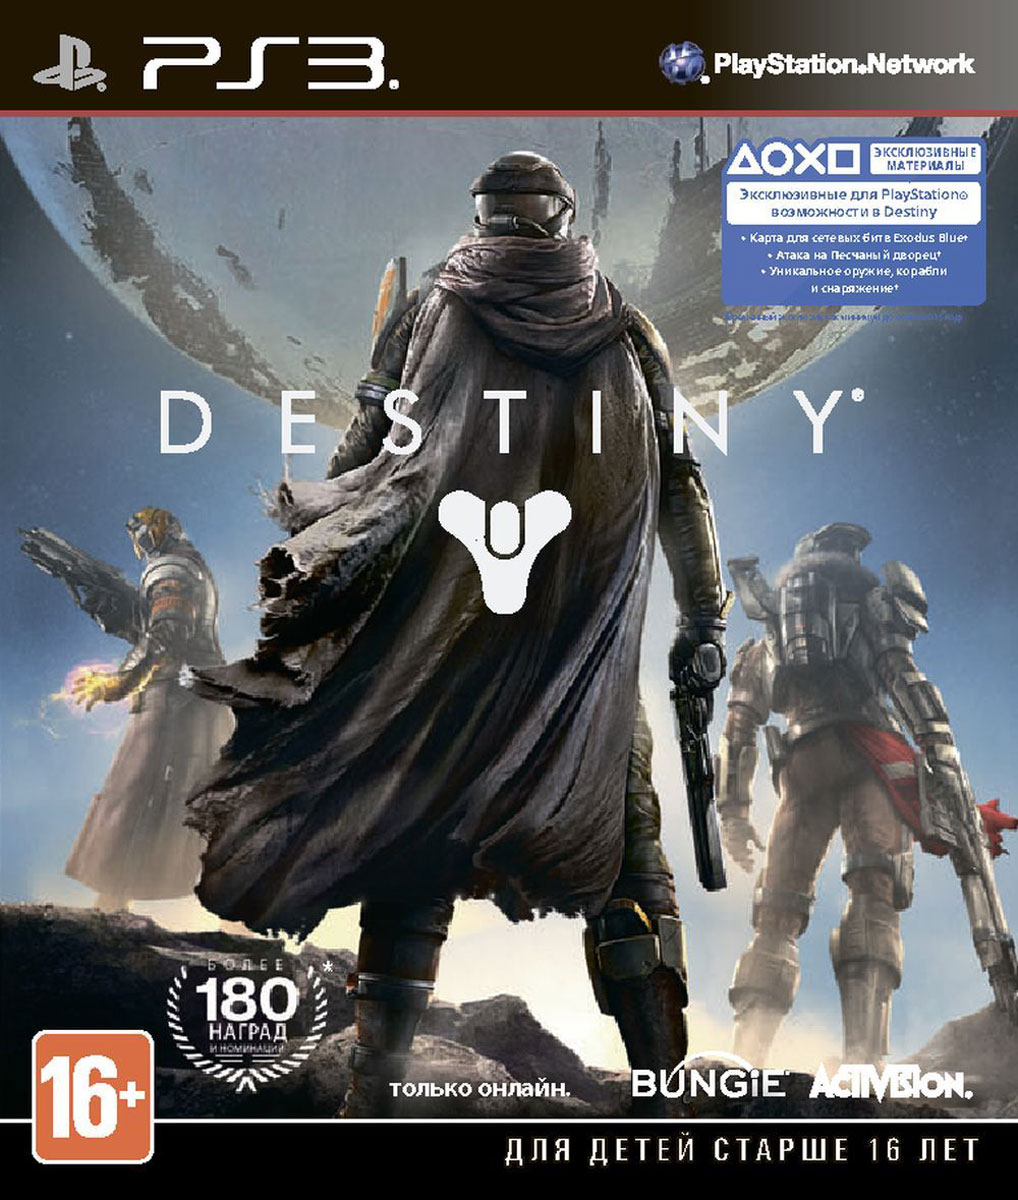 Destiny (PS3), Bungie Software